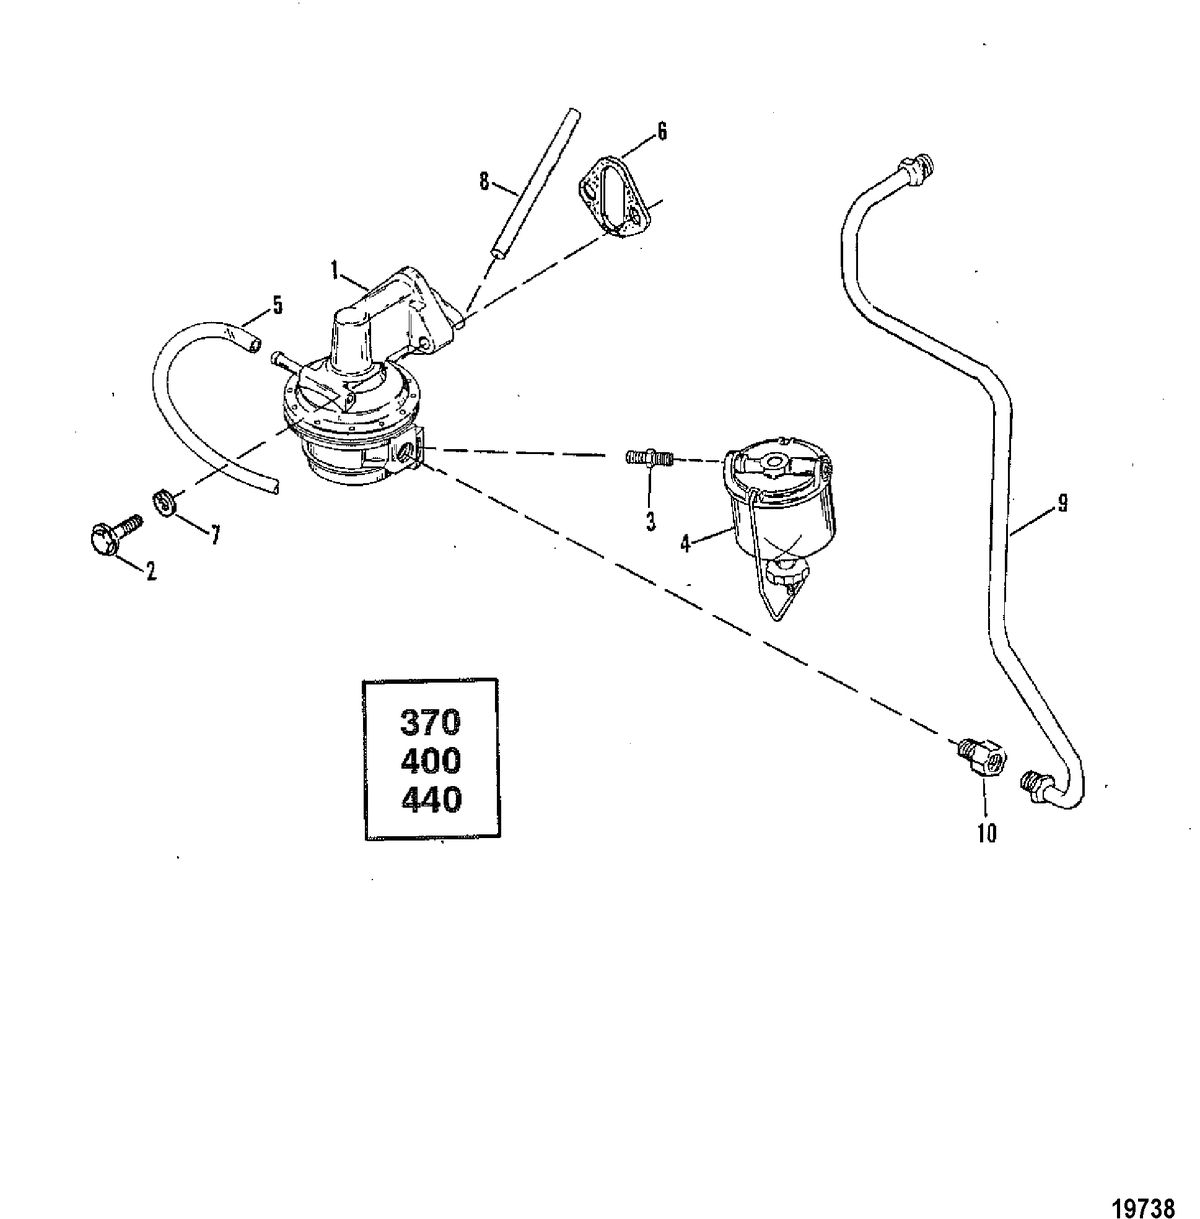 MERCRUISER 370/400/440/460 CYCLONE TRS ENGINE Fuel Pump and Fuel Lines(370/400/440)